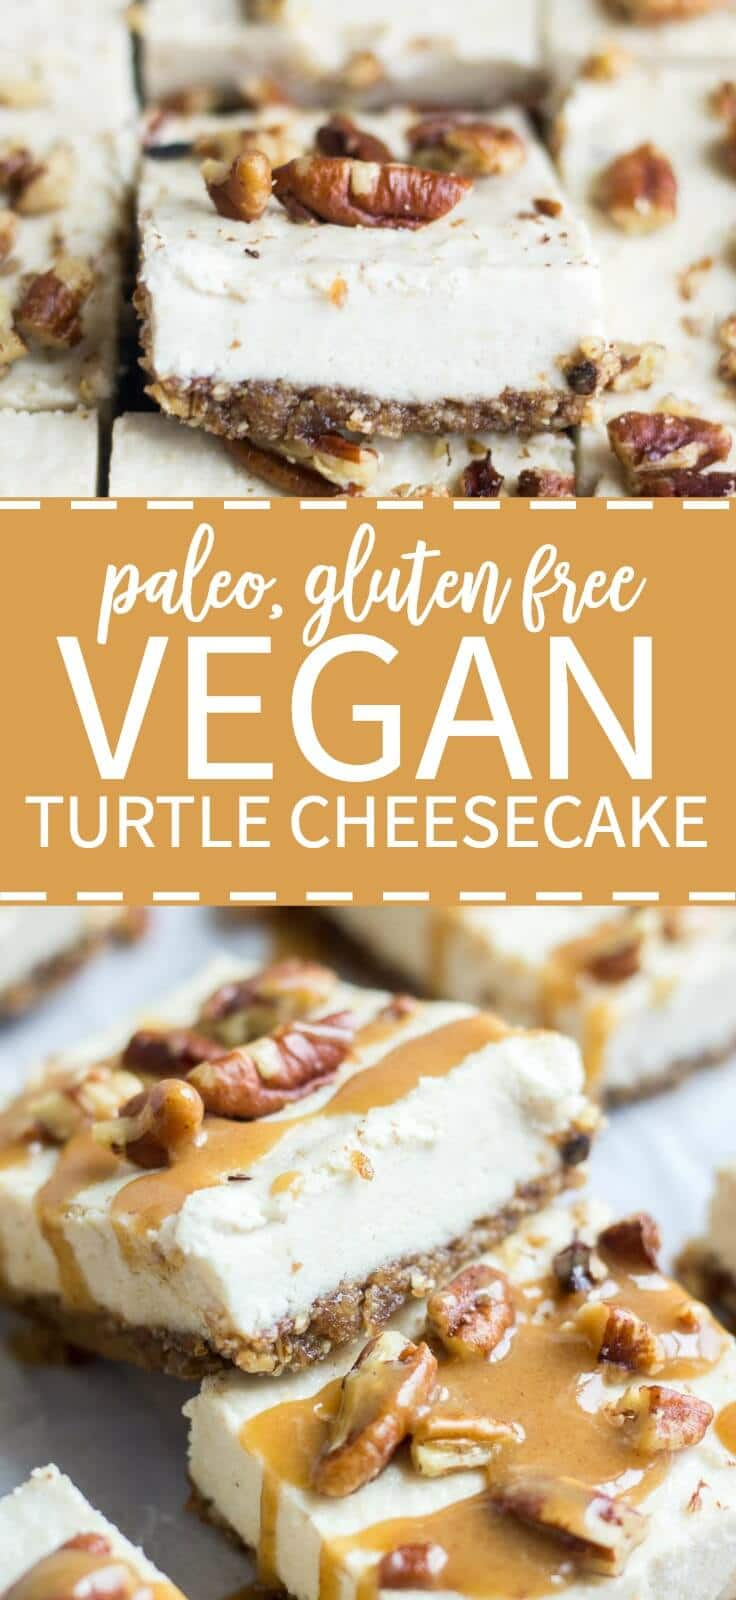 Smooth and creamy, these turtle vegan cheesecake bars are an easy and no bake healthy dessert. The crust is made with pecans and dates and the silky vegan cheesecake is topped with paleo caramel and pecans. They're paleo, gluten free, refined sugar free and raw! You won't believe how yummy an easy it is to make!